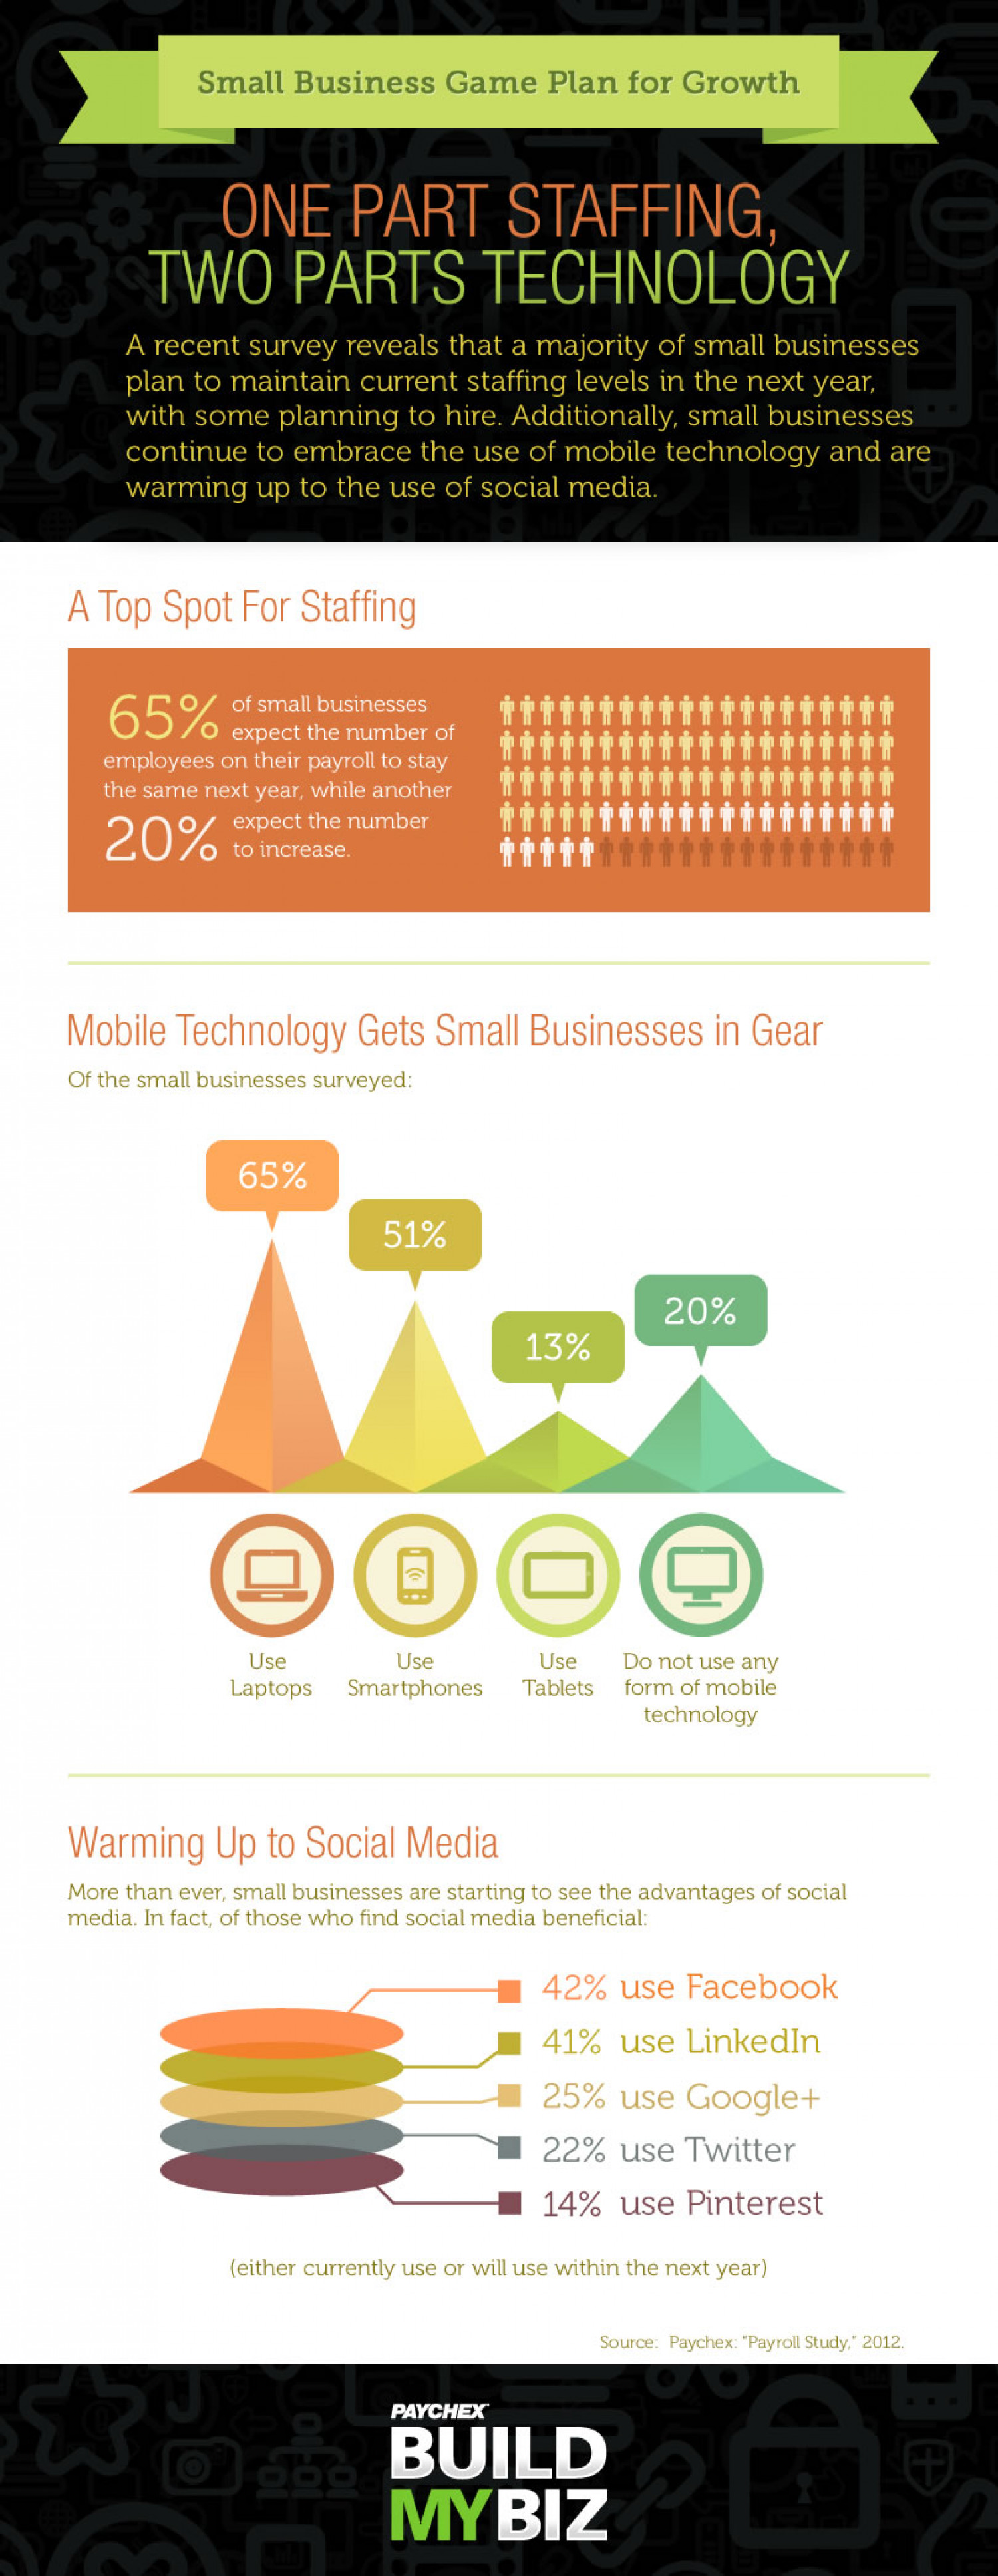 Small Business Game Plan for Growth Infographic